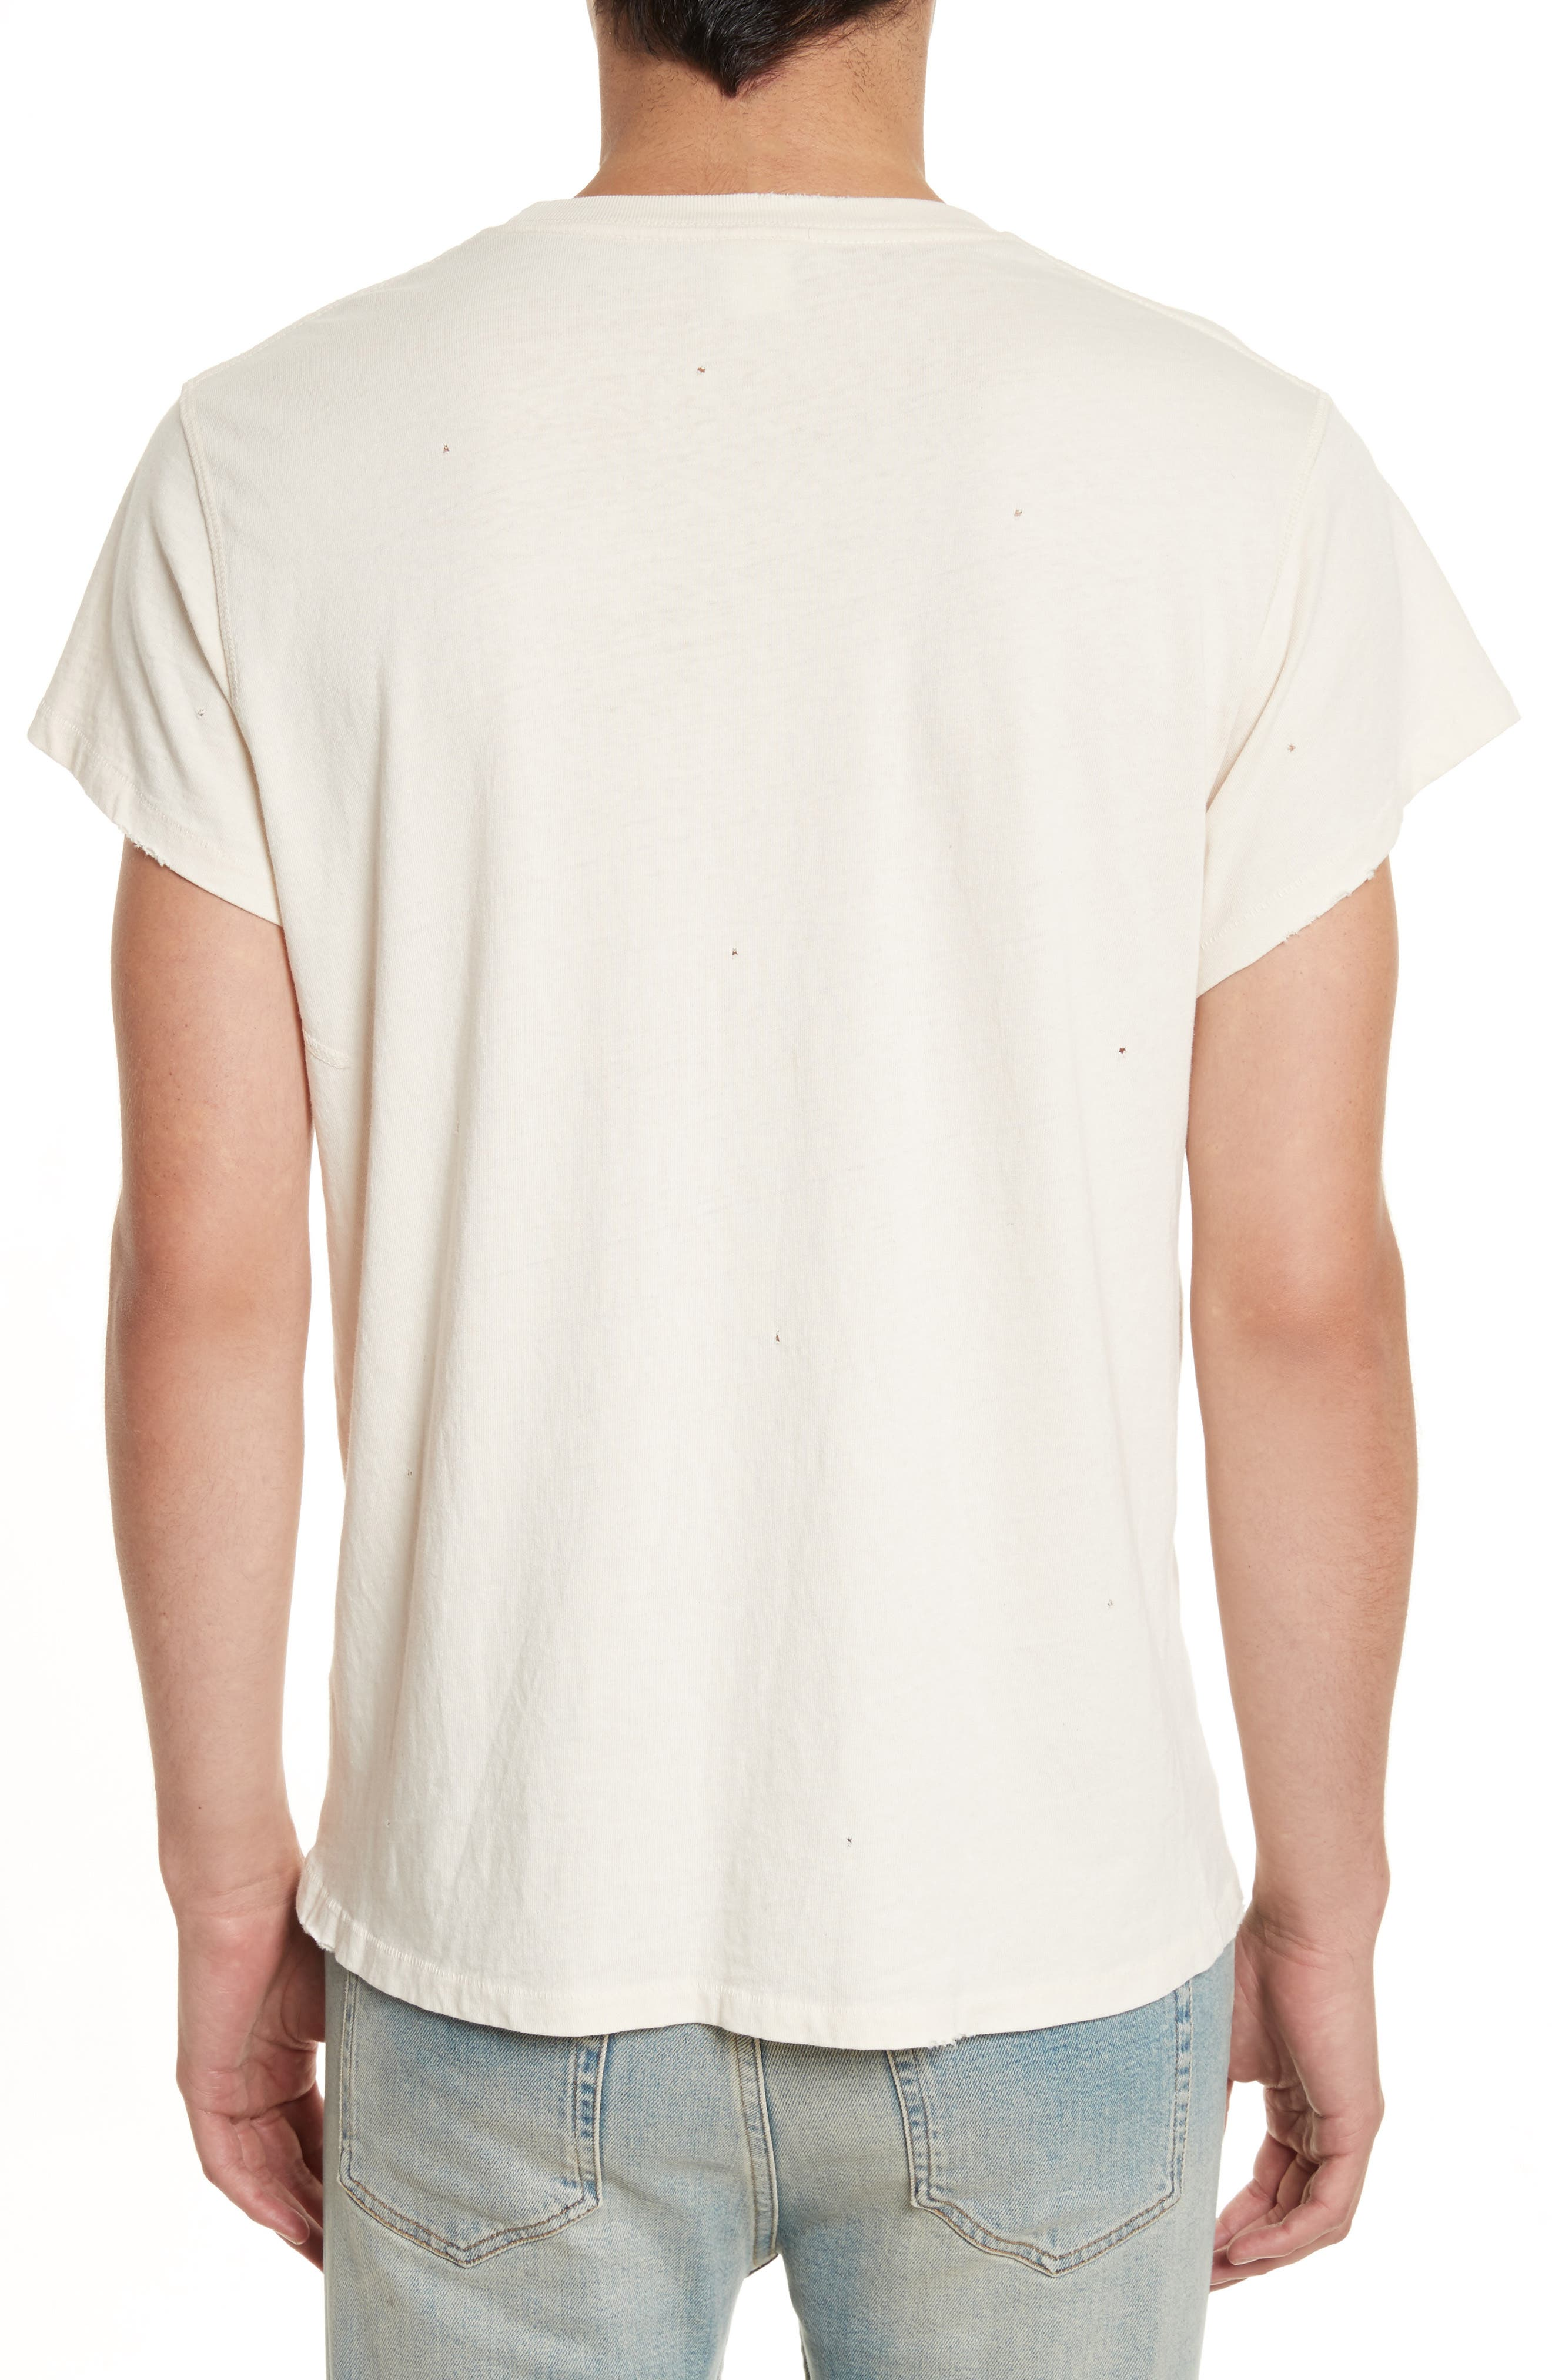 Woodstock Graphic T-Shirt with Badges,                             Alternate thumbnail 2, color,                             100